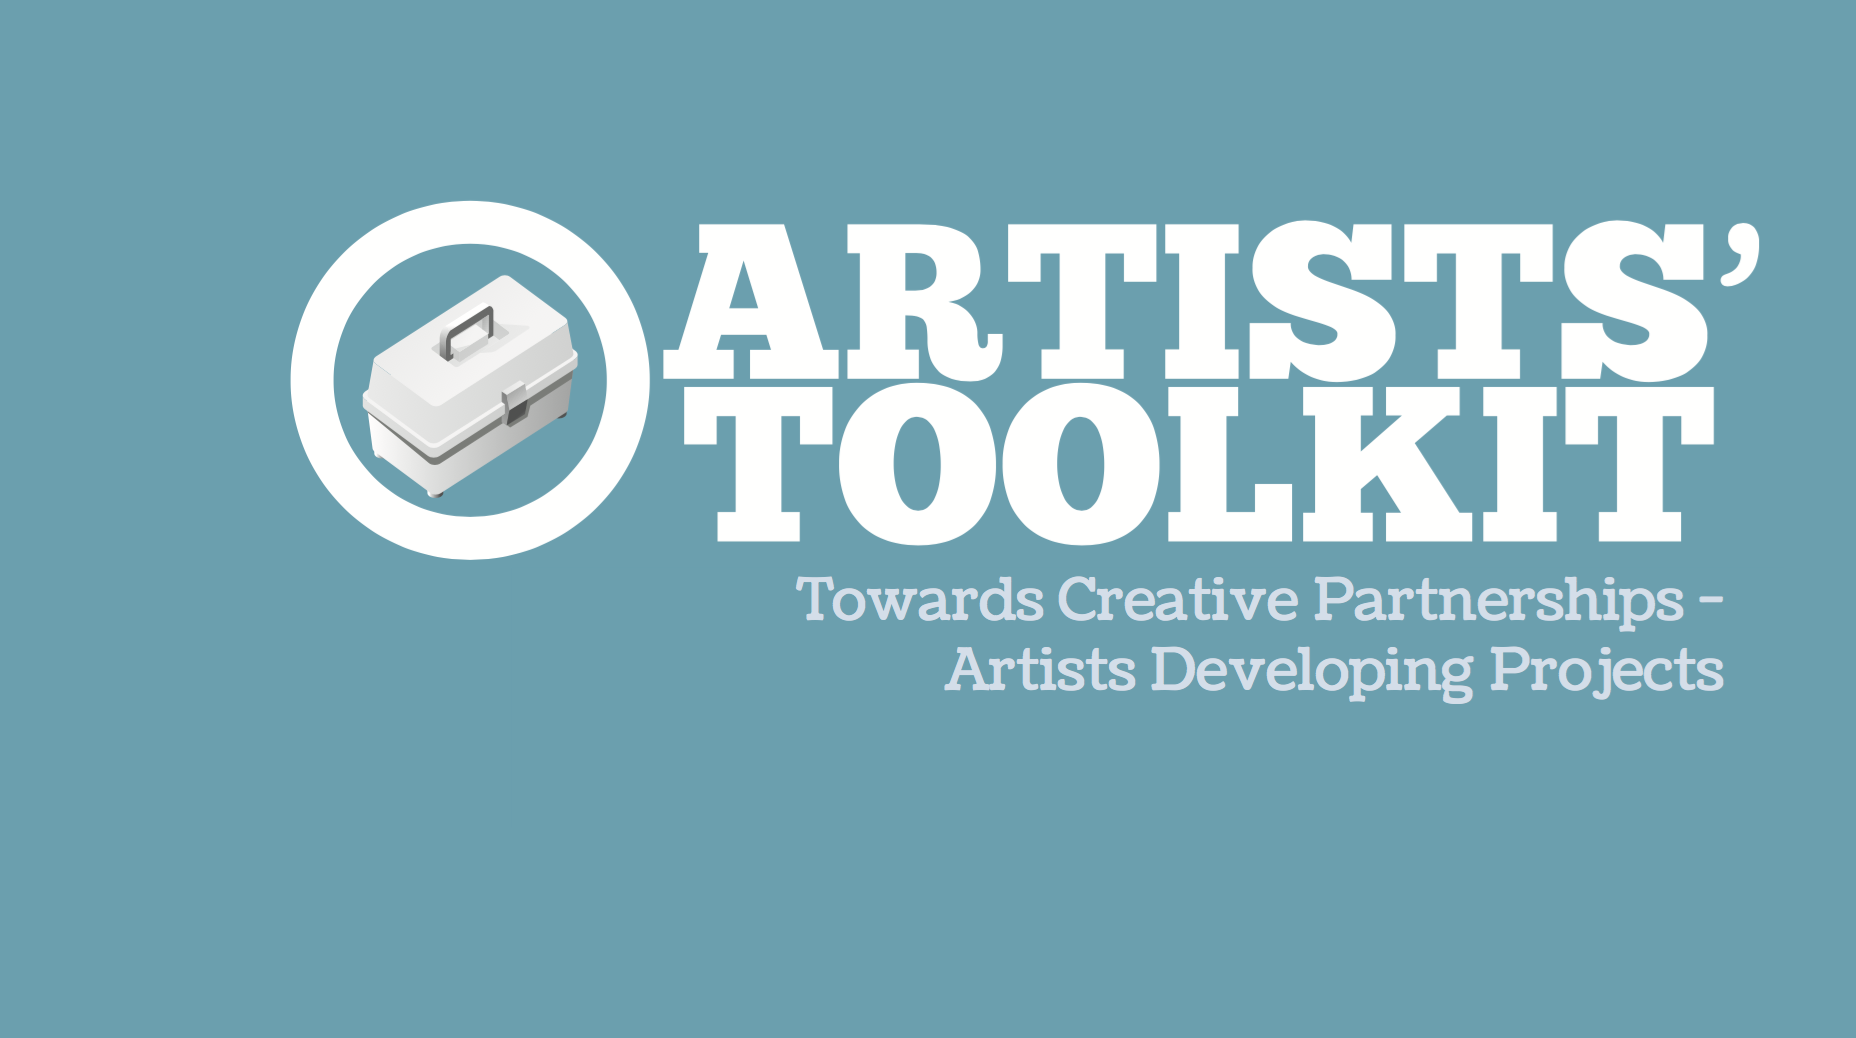 Artist and Partner Toolkit - Towards Creative Partnerships